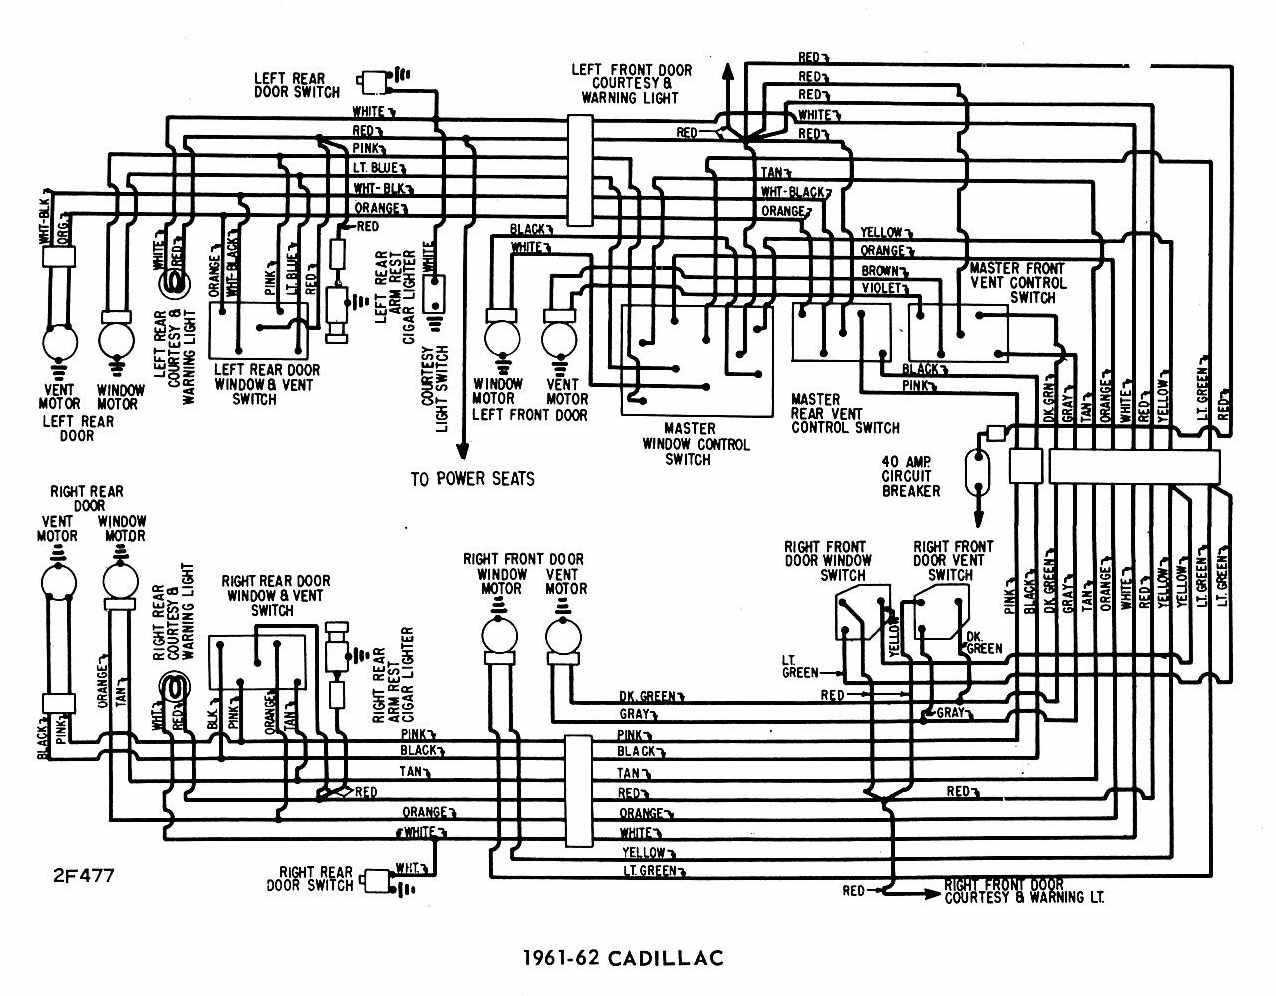 cadillac 1961 1962 windows wiring diagram all about wiring diagrams rh diagramonwiring blogspot com 1962 cadillac deville wiring diagram Cadillac DeVille Wiring-Diagram